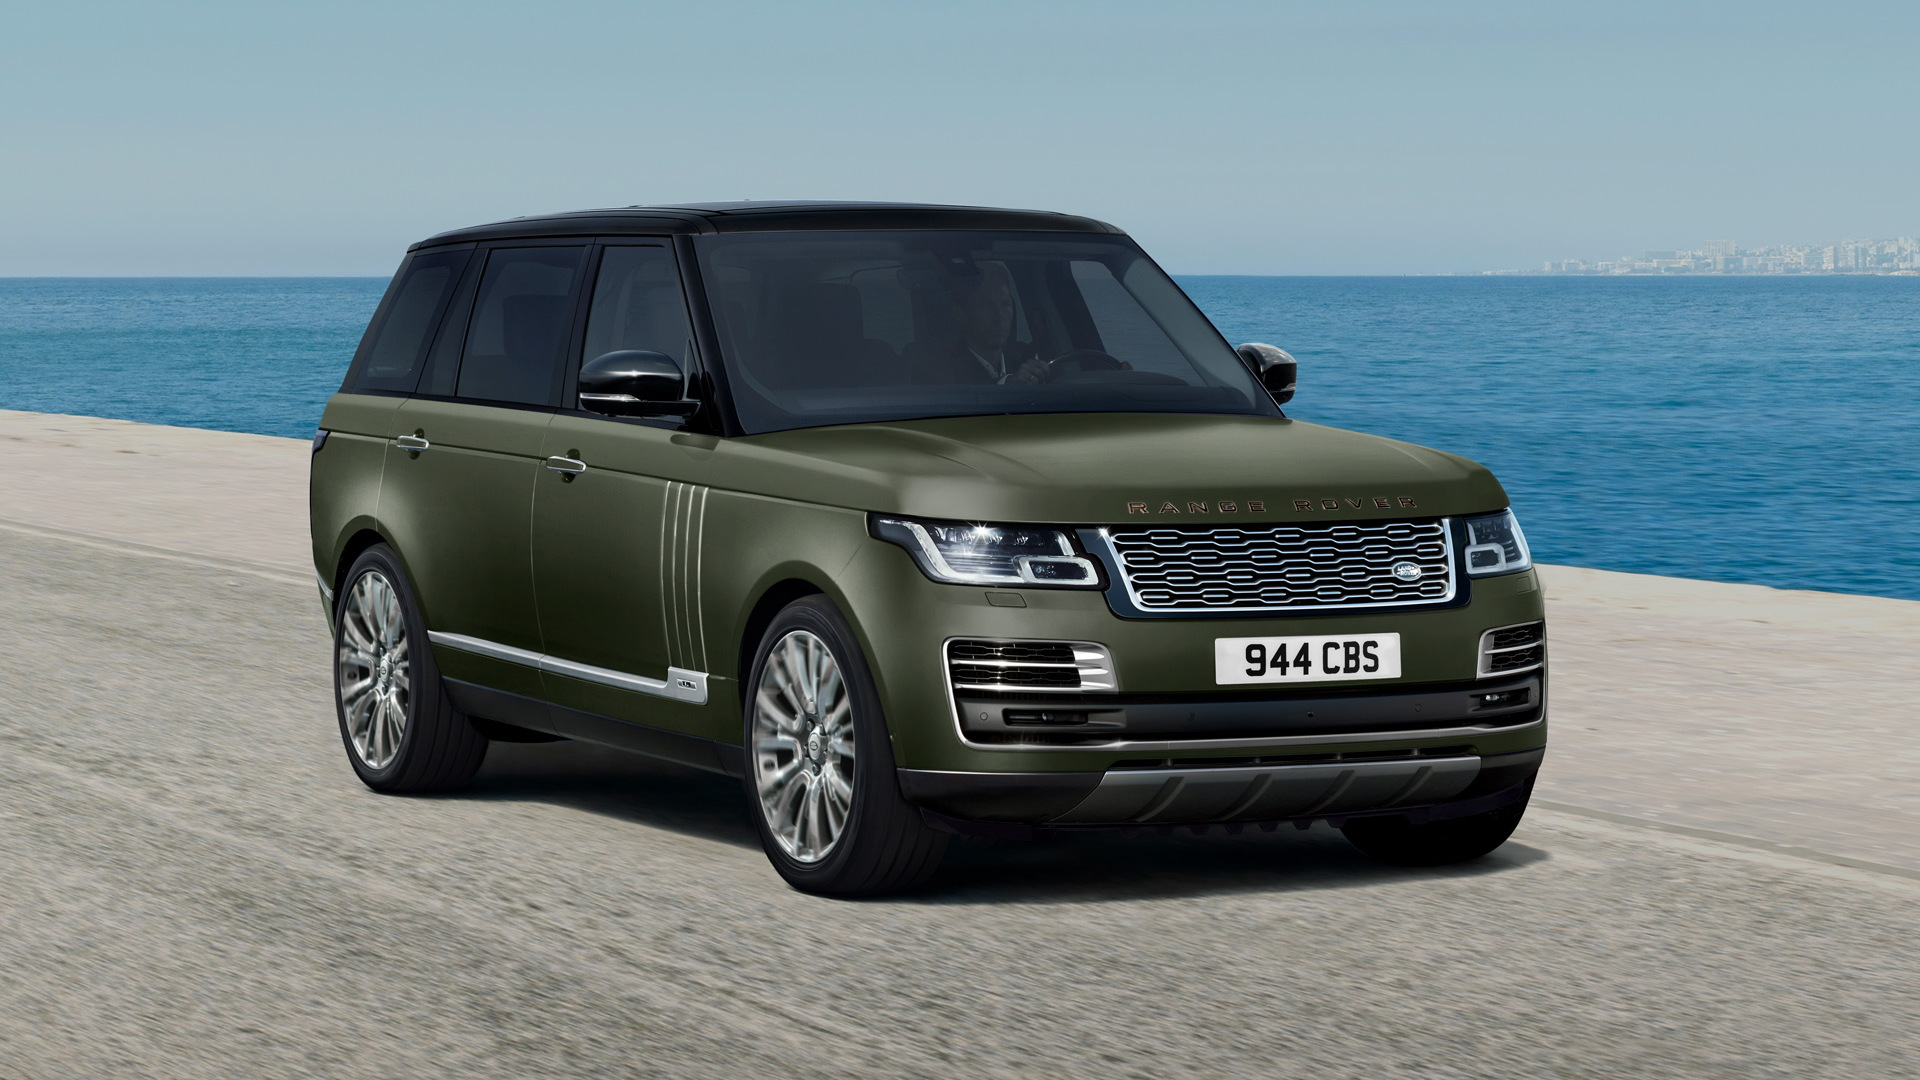 2021 Land Rover Range Rover SVAutobiography Ultimate